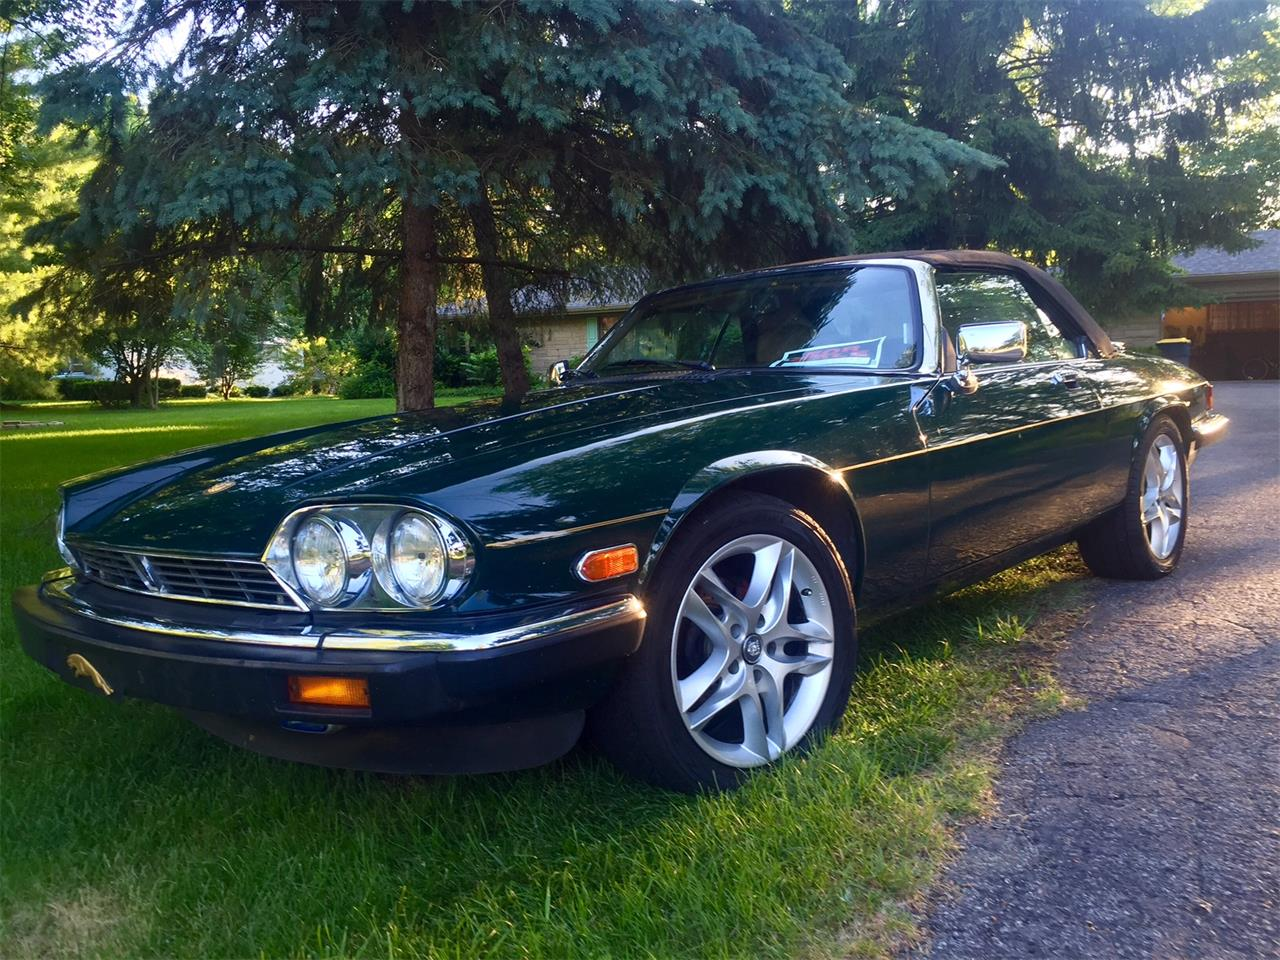 Large Picture of 1991 Jaguar XJS located in Indianapolis Indiana - $14,800.00 Offered by a Private Seller - GNCE